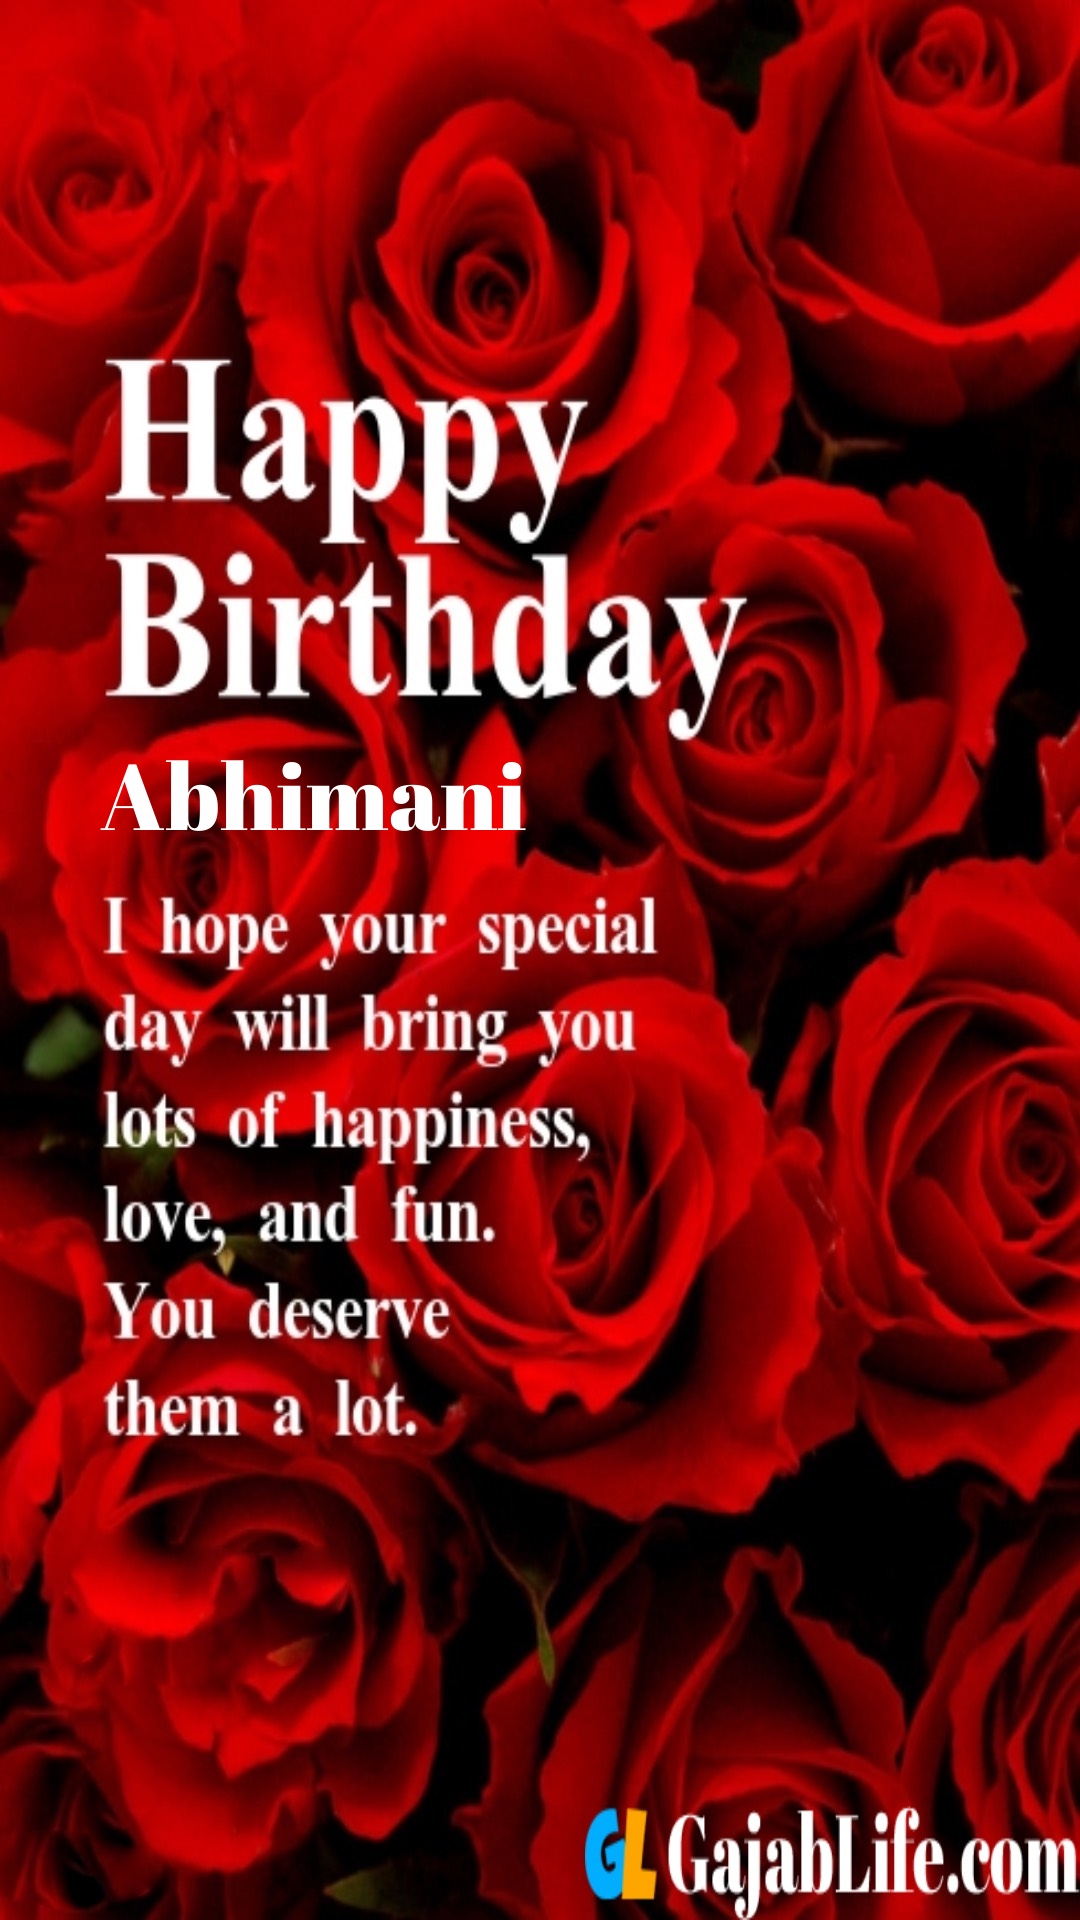 Abhimani birthday greeting card with rose & love